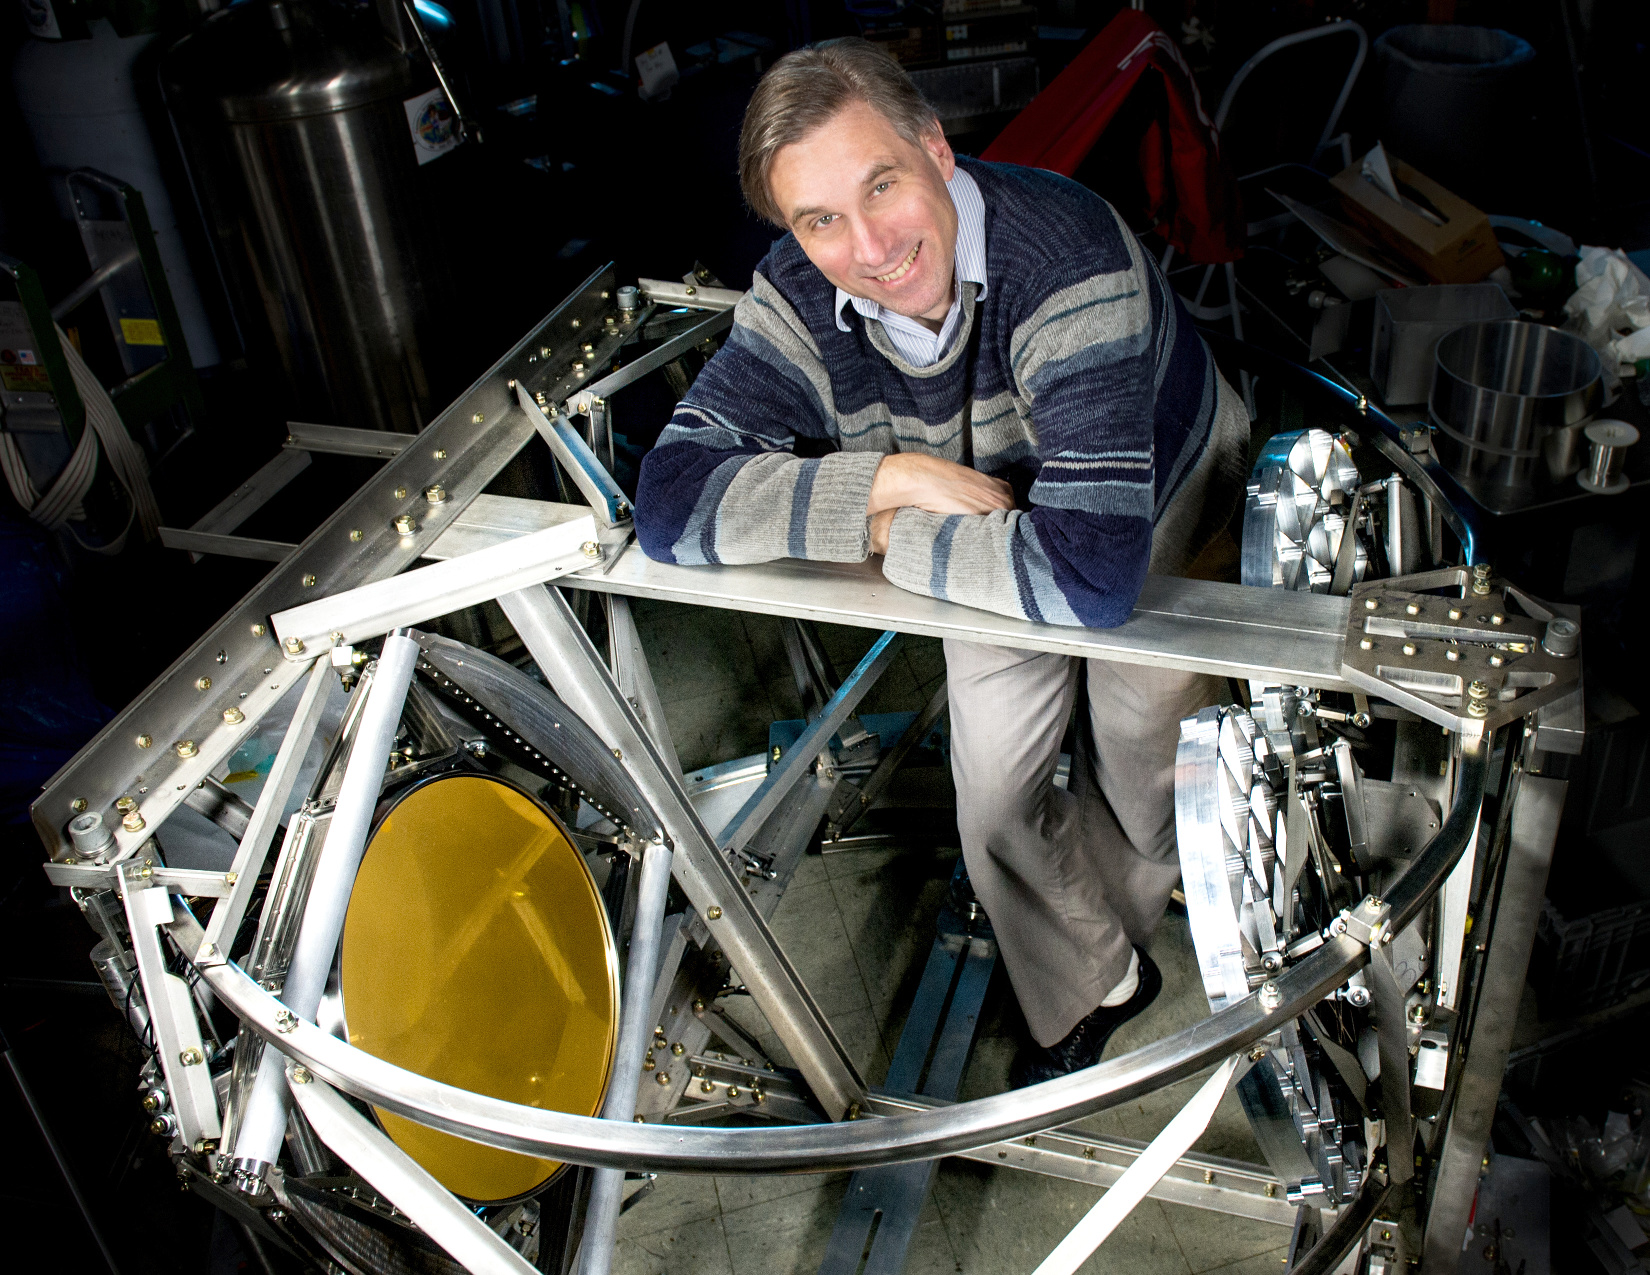 NASA scientist Al Kogut will search for evidence of cosmological inflation with a balloon-borne observatory called the Primordial Inflation Polarisation Explorer, or PIPER. Image credits: NASA/W. Hrybyk.